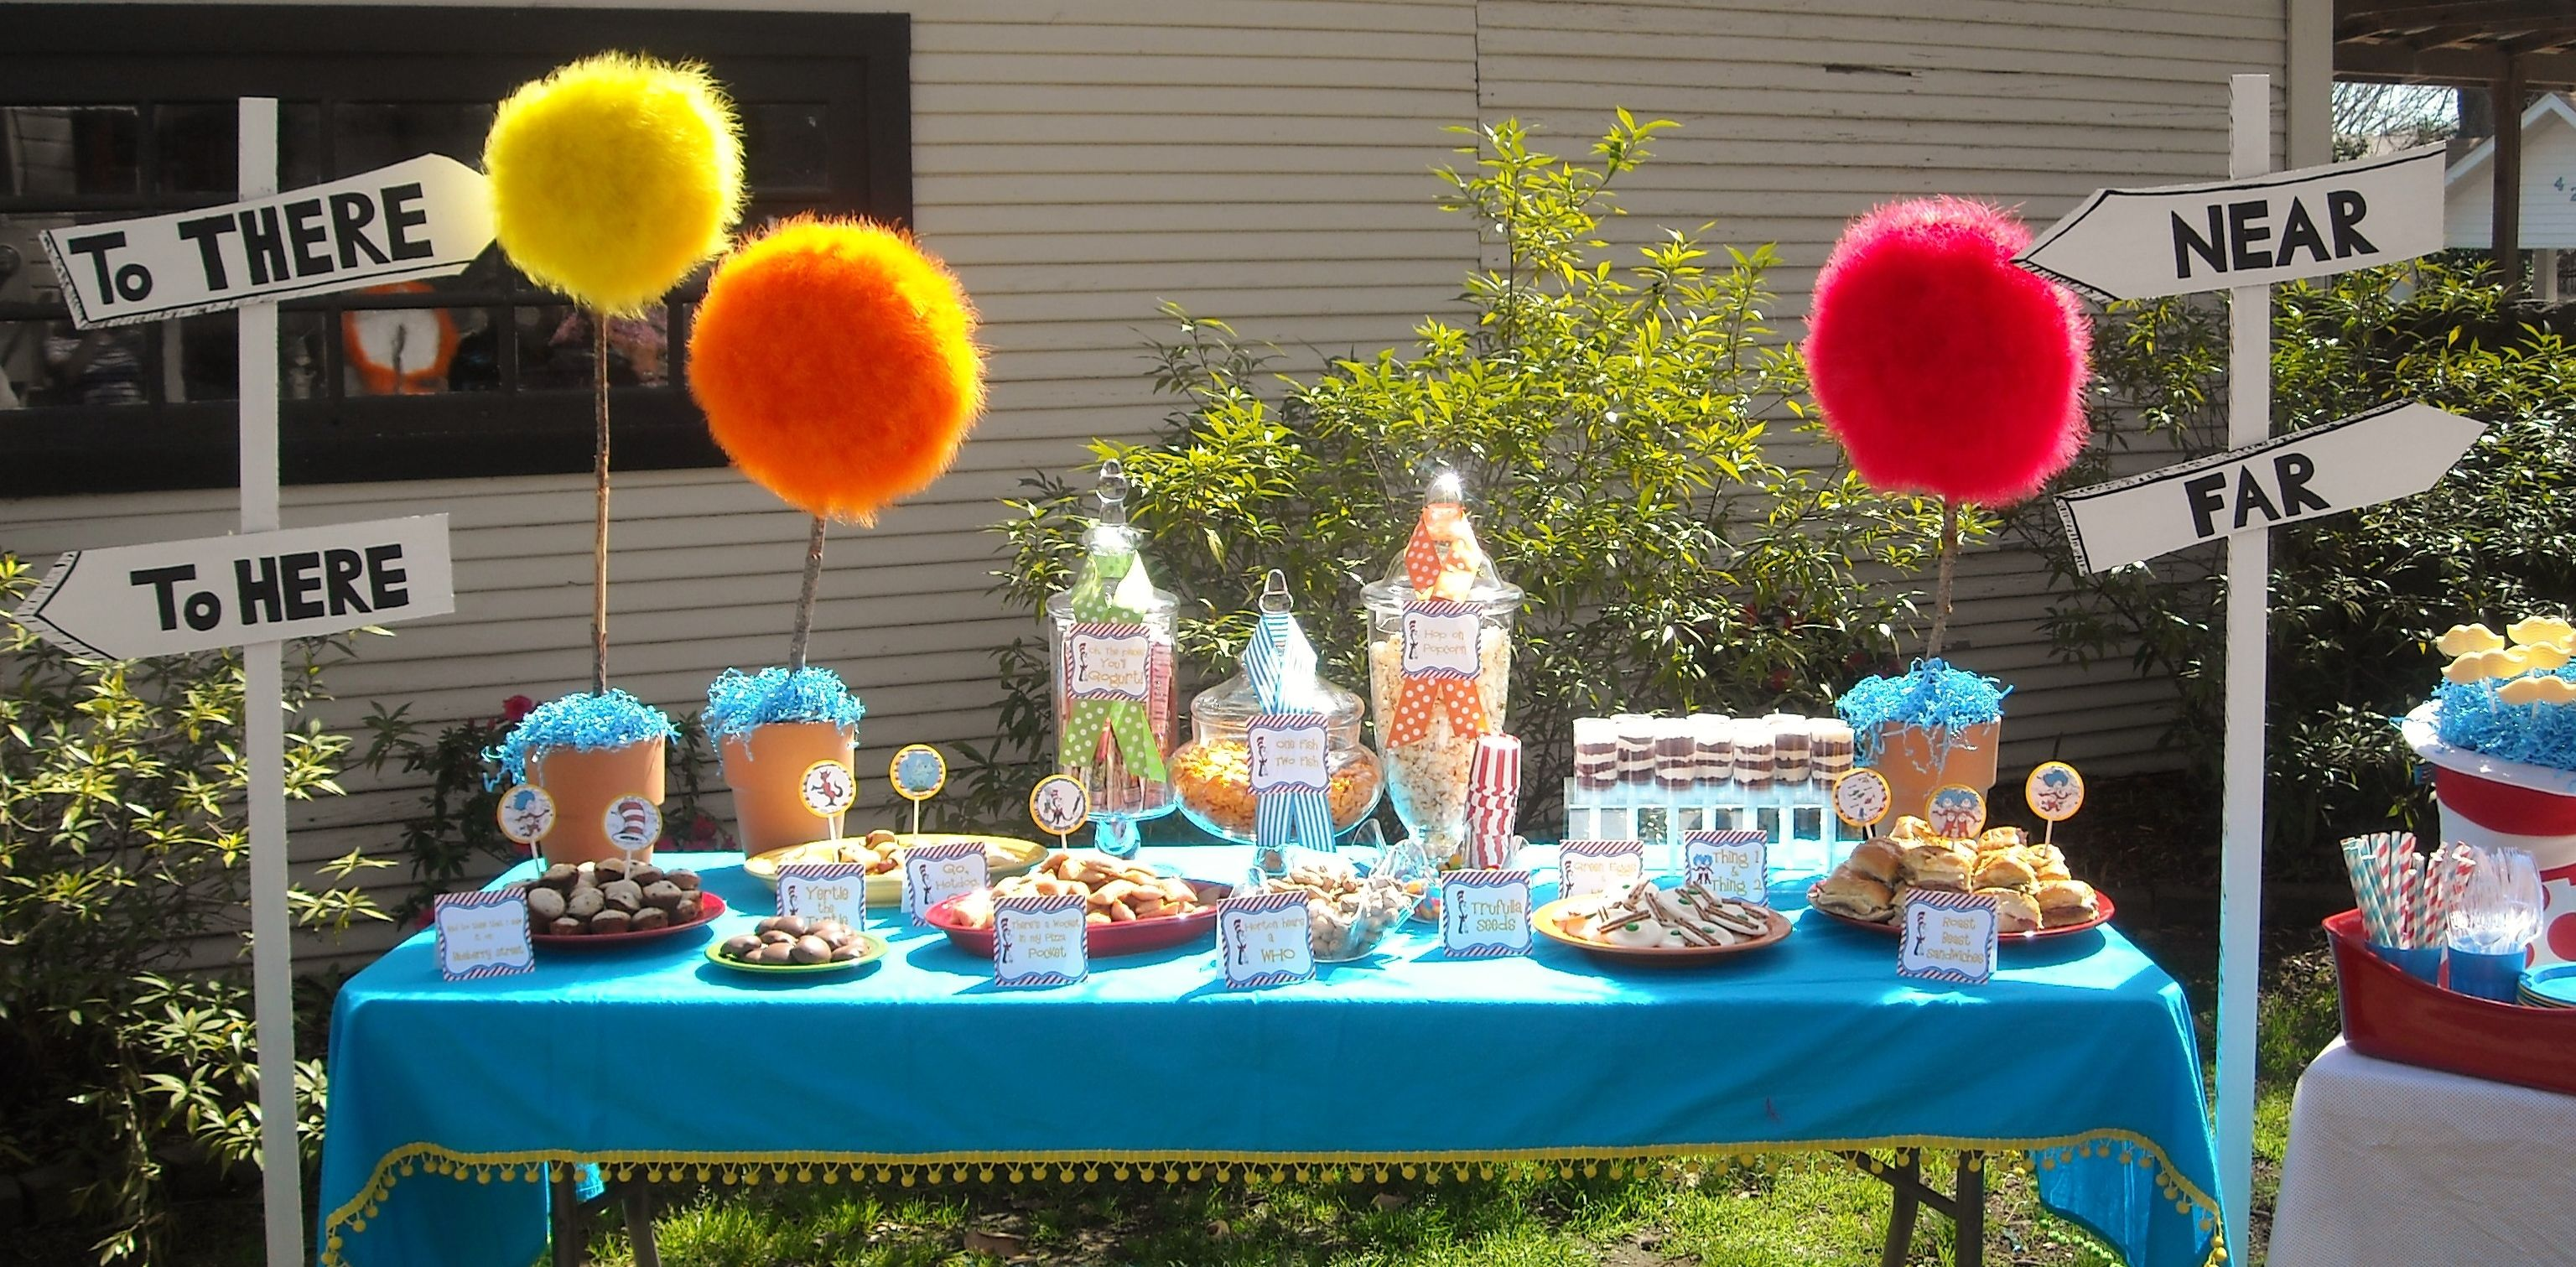 We Heart Parties: Party Information - Dr. Seuss Birthday Party?PartyImageID=bd238c9c-7a0b-4414-b2fb-fad55e9236c8